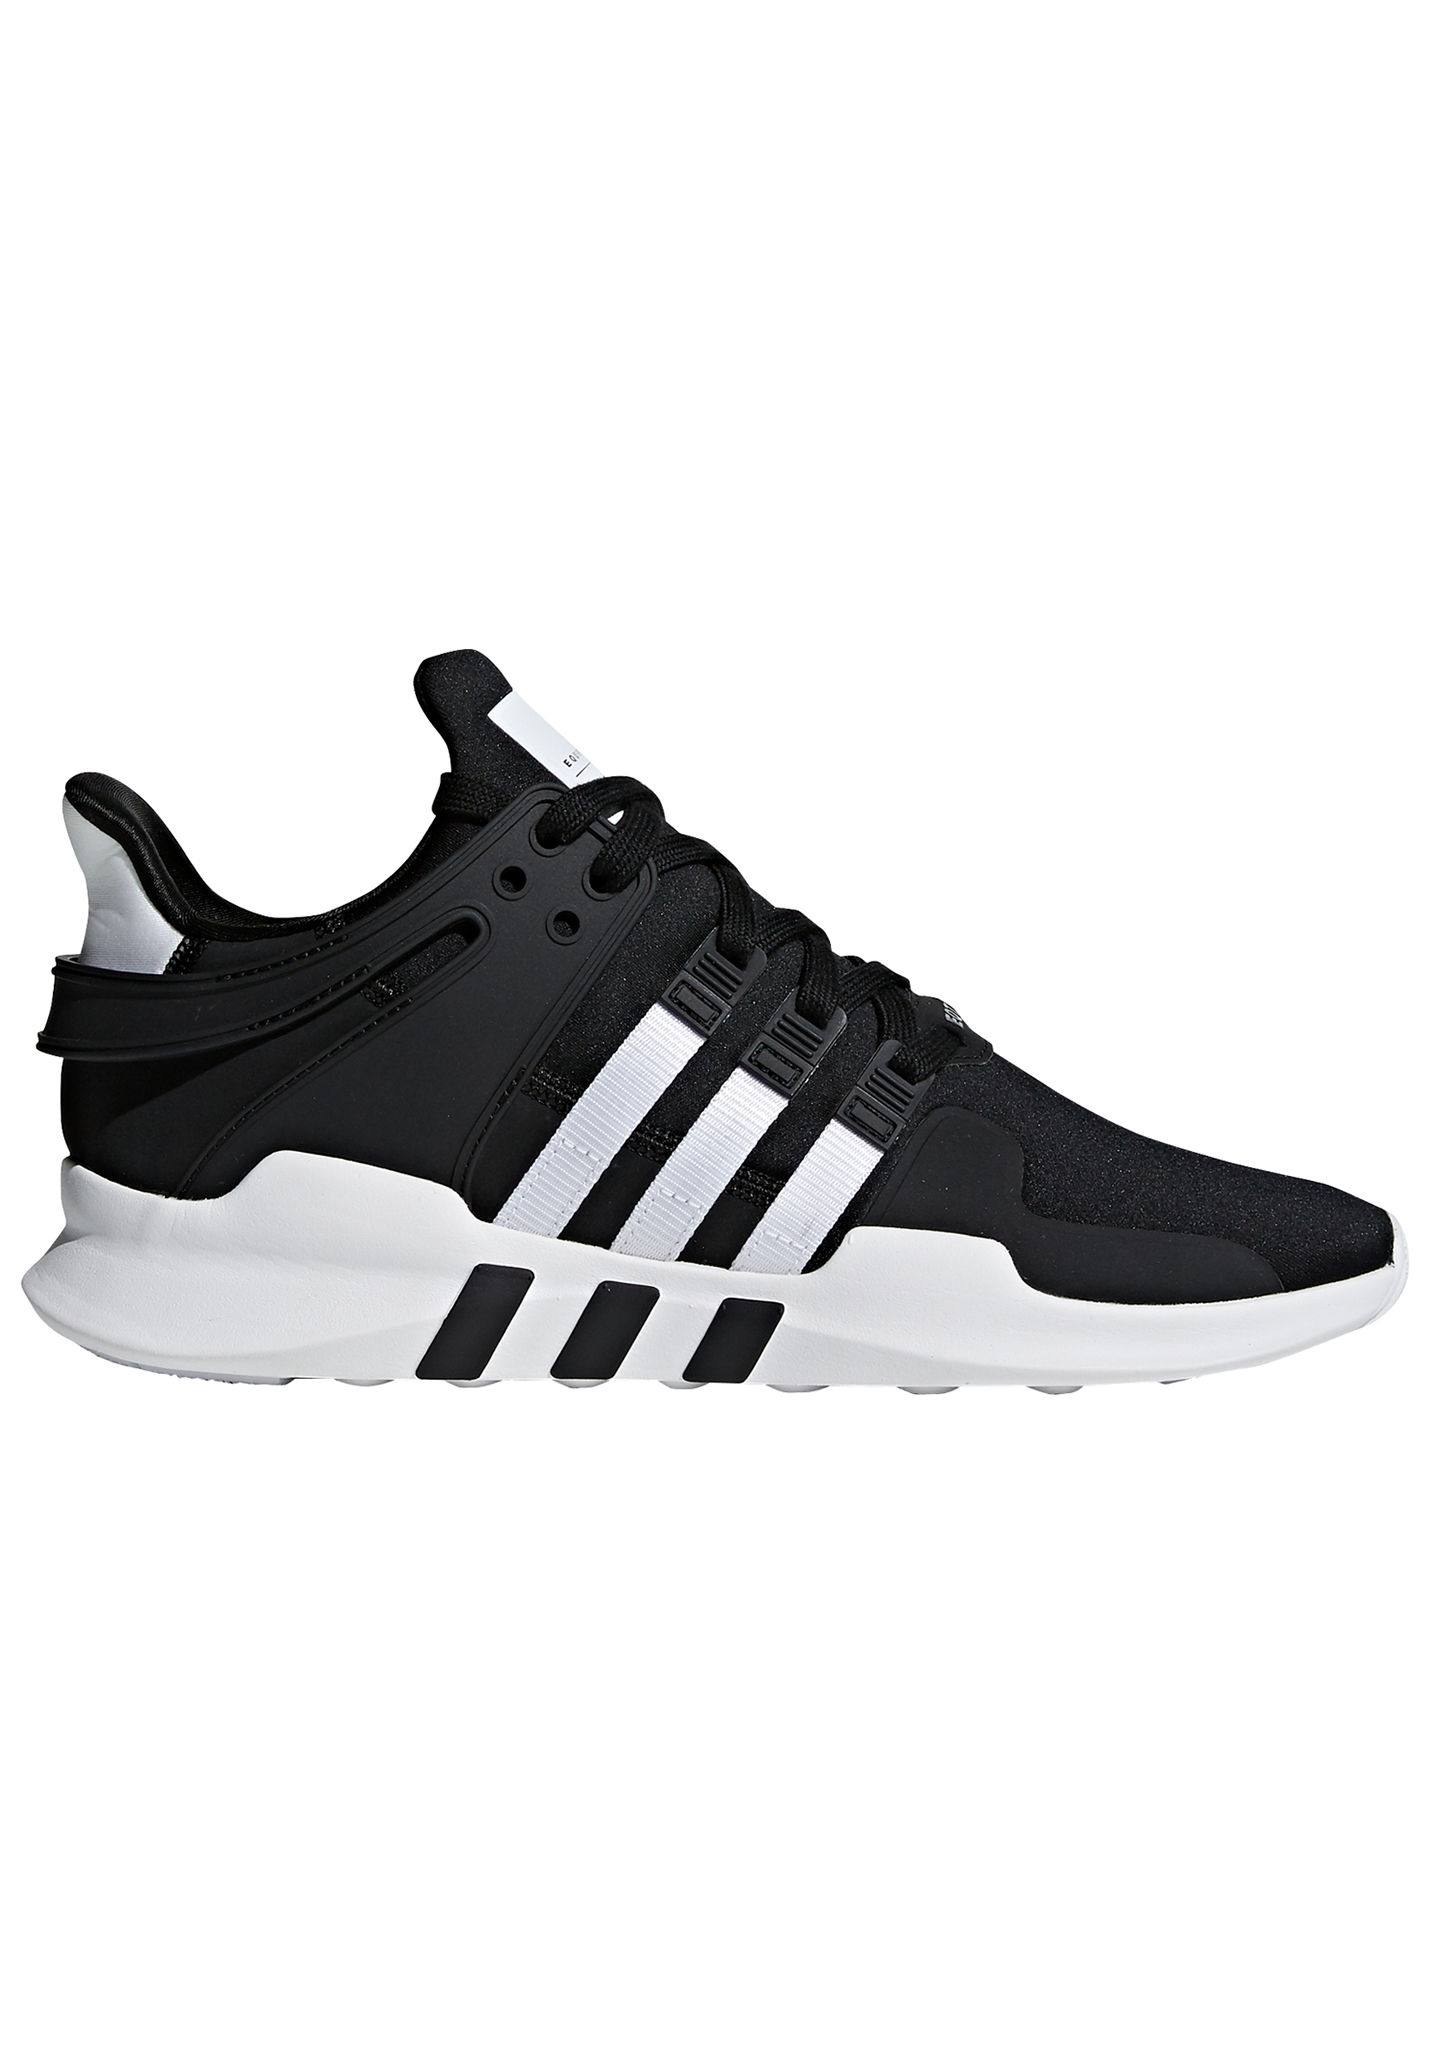 free shipping aff8c 05215 ADIDAS ORIGINALS EQT Support ADV - Sneakers for Men - Black - Planet Sports